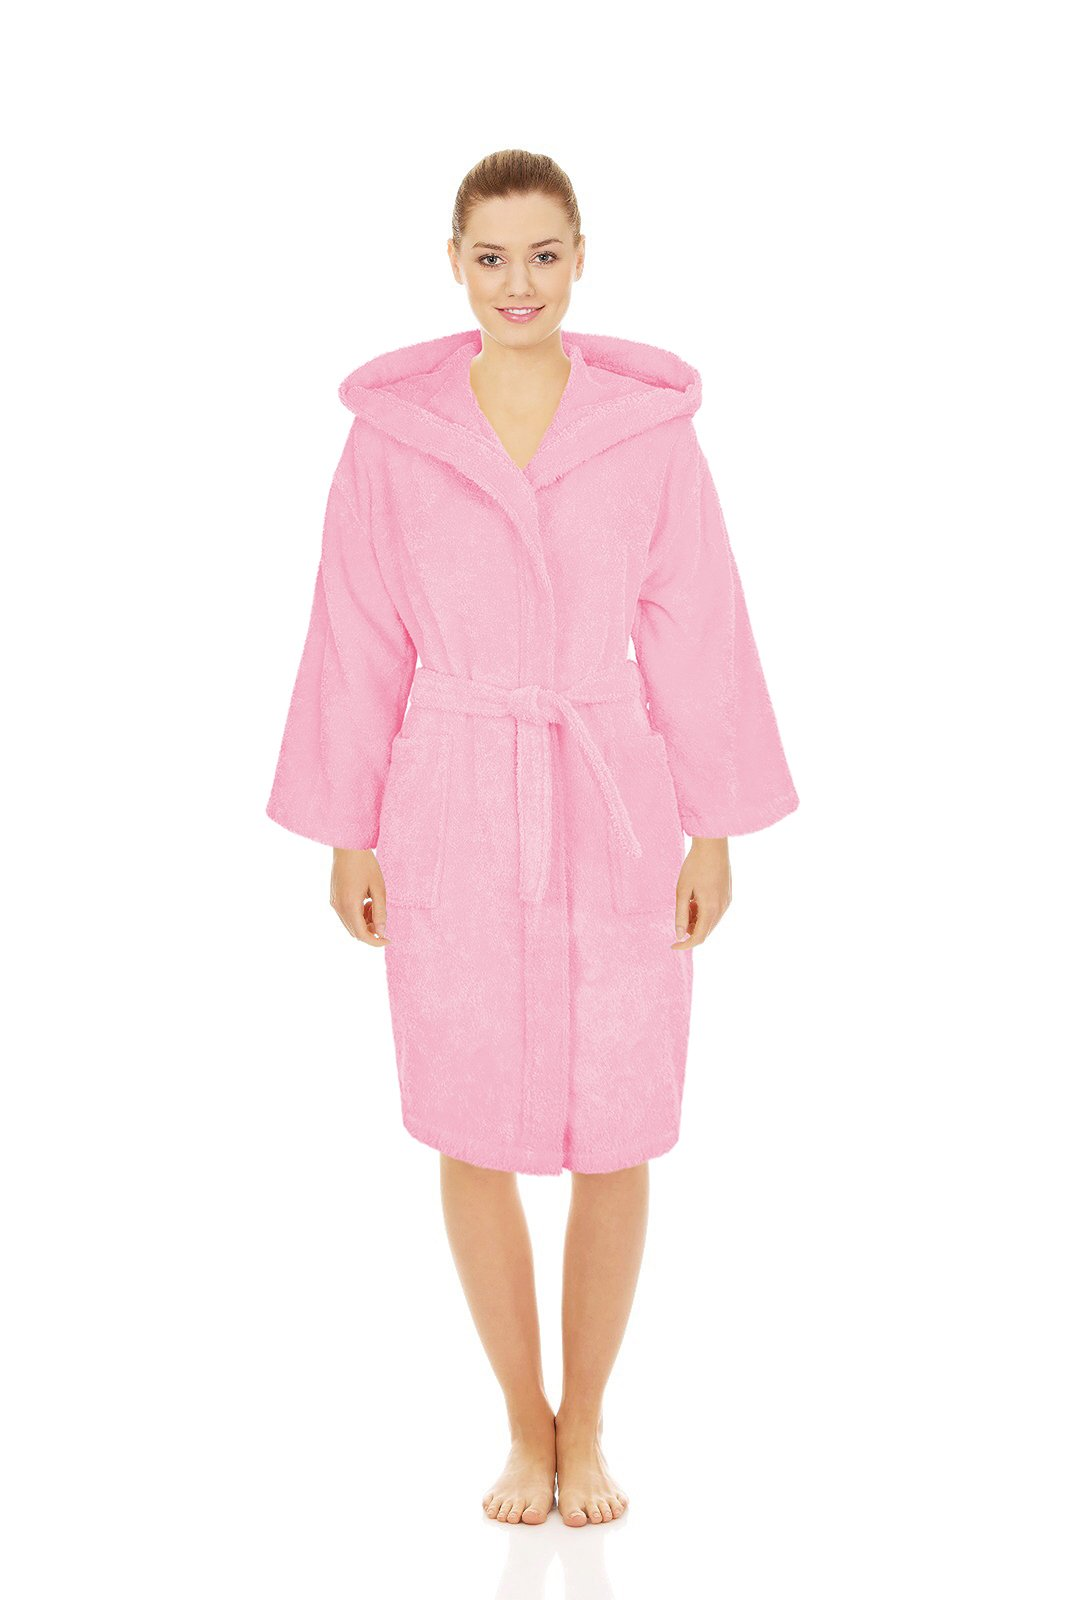 Silken Teenager Robe 100% Turkish Cotton Terry Hooded Bathrobe Extremely Absorbent Towel (Pink, X-Large | 44'' | 12+ Ages)